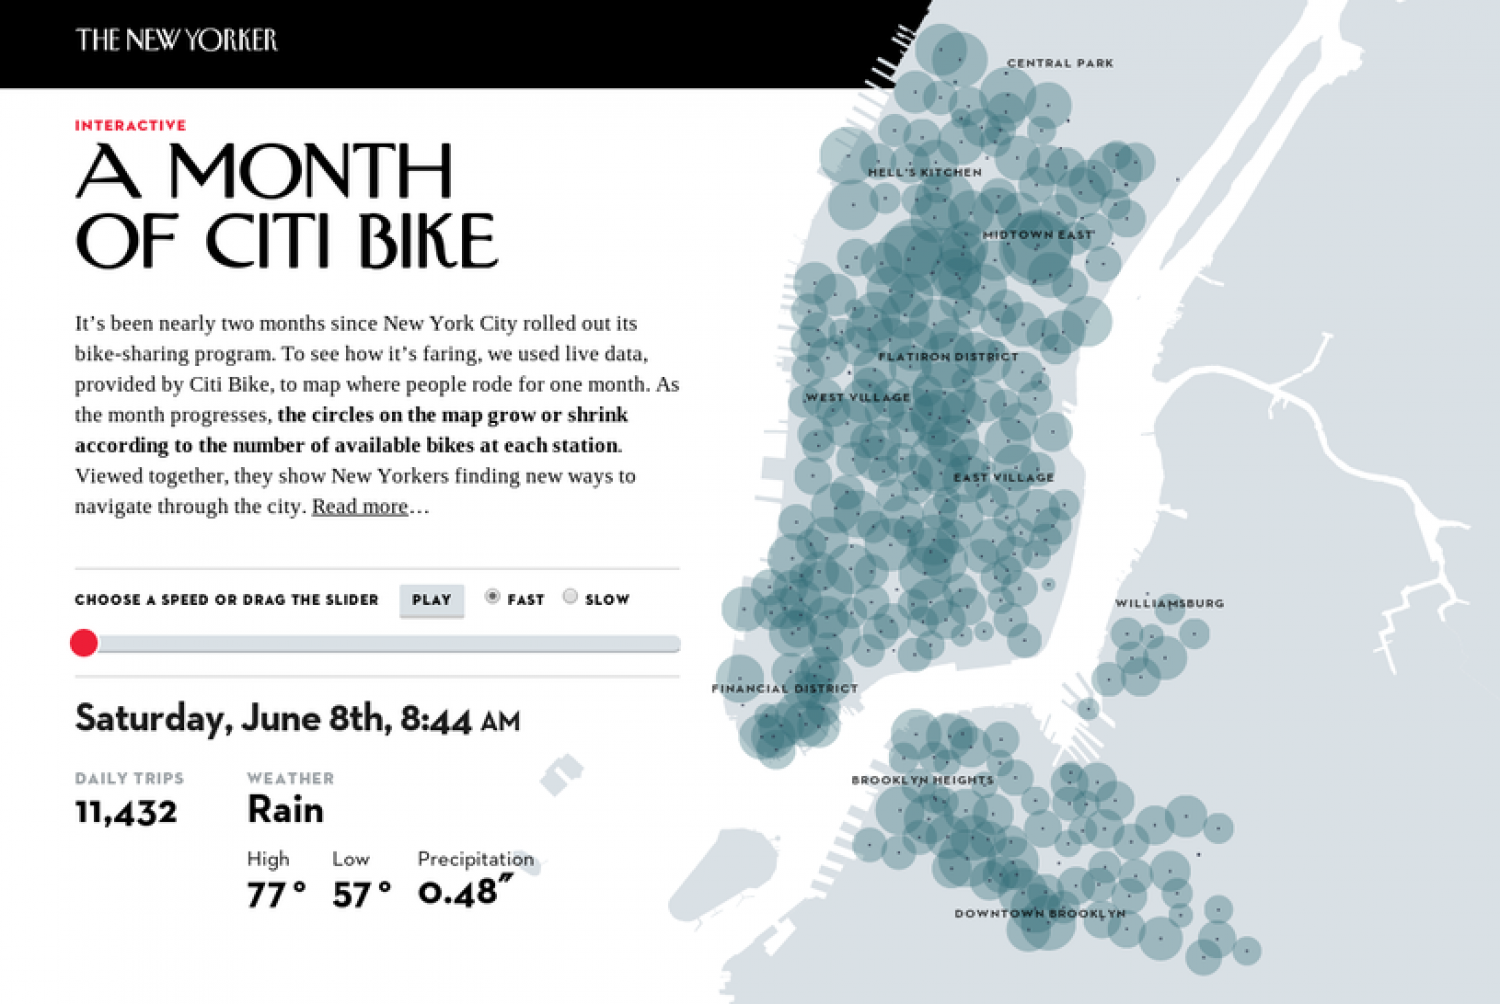 A Month of Citi Bike Infographic